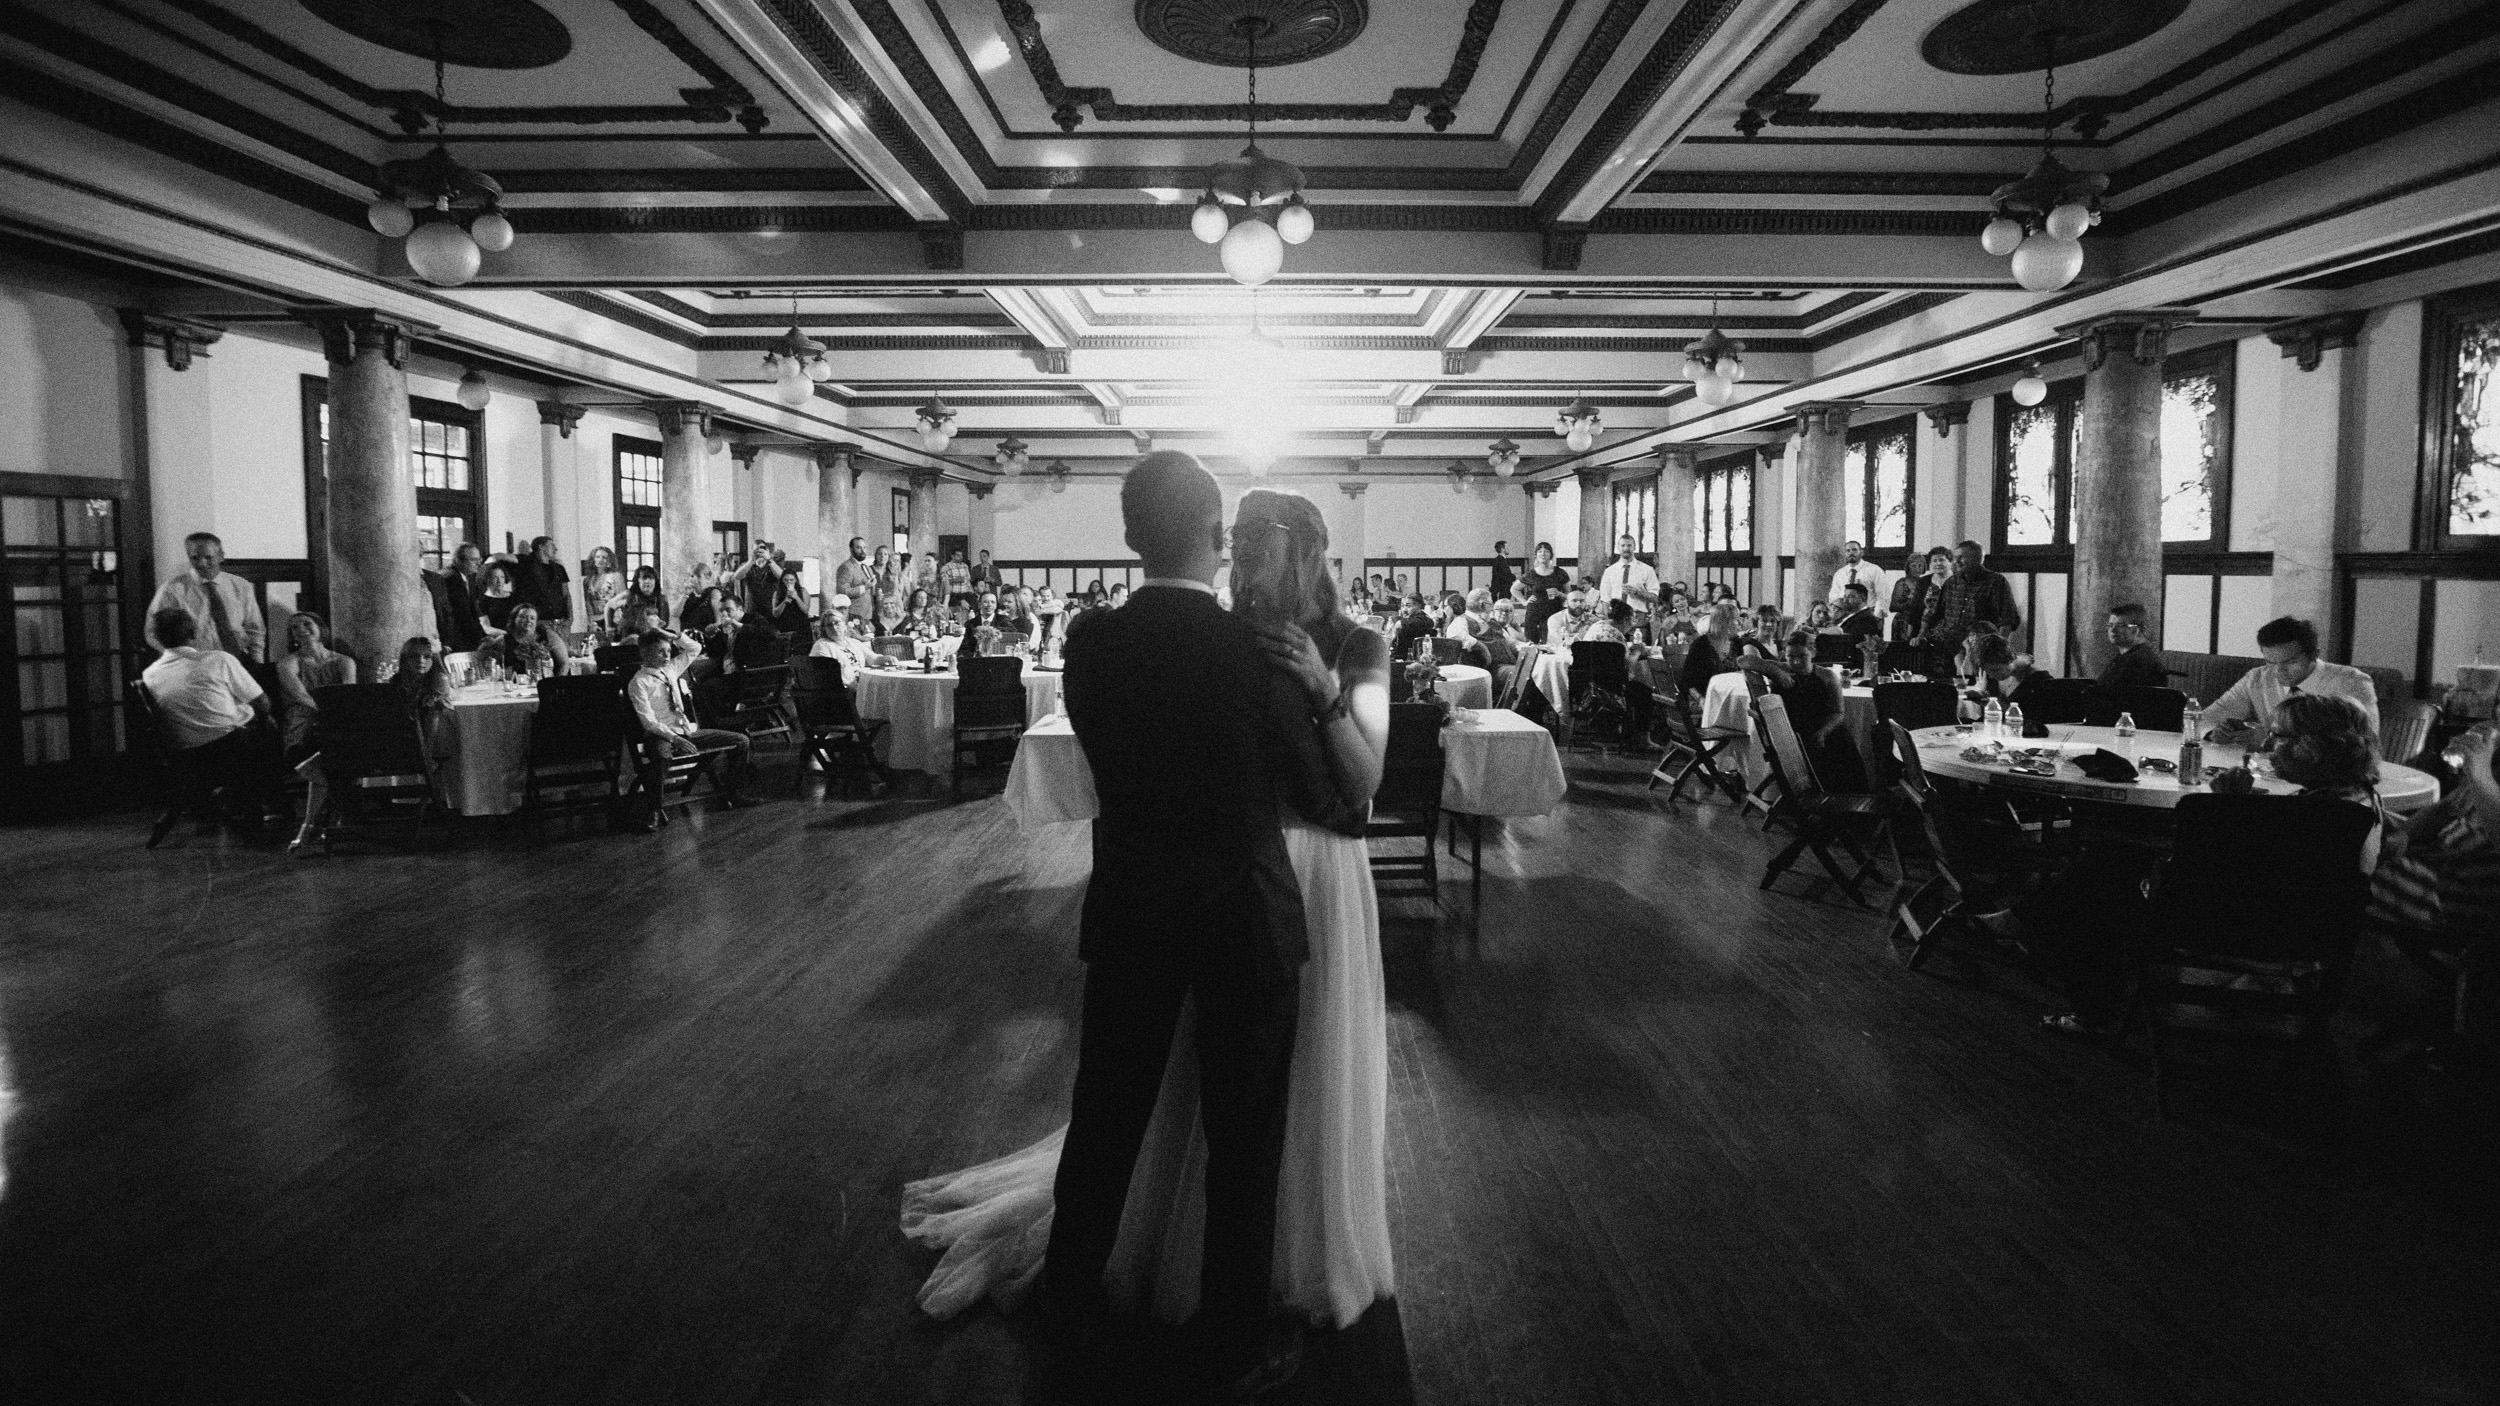 alec_vanderboom_john_micahel_lucy_kansas_city_wedding_photographer-0070.jpg